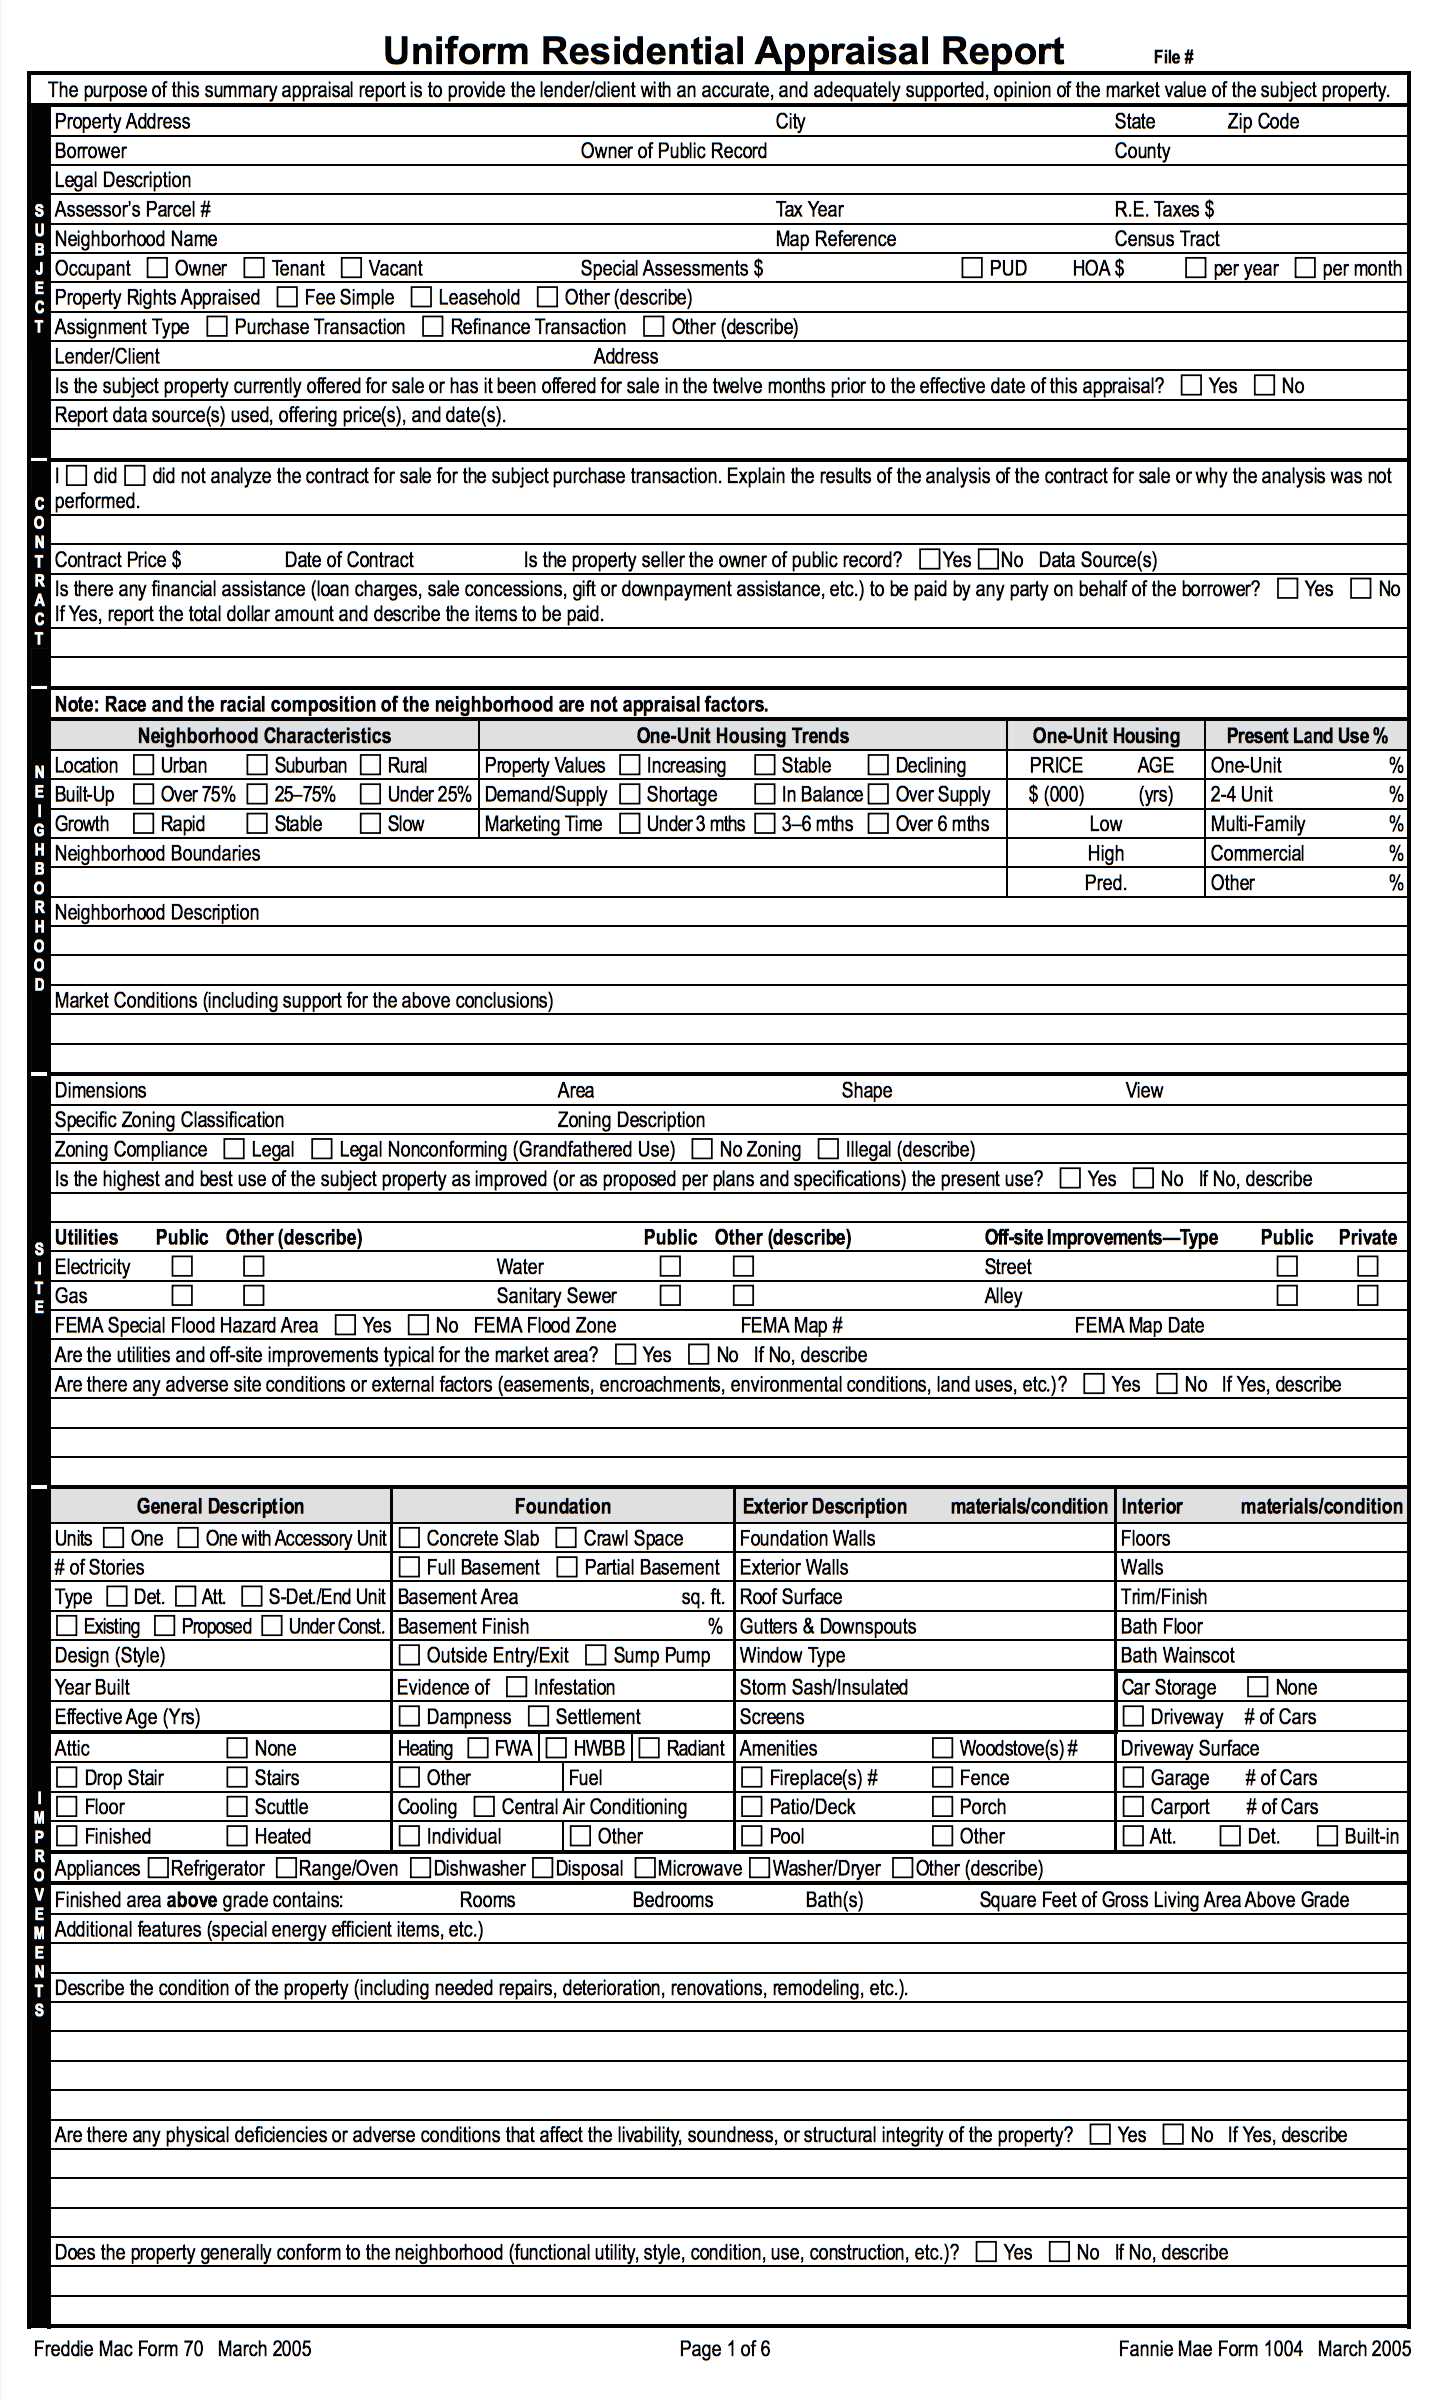 Page 1 of a home appraisal report.